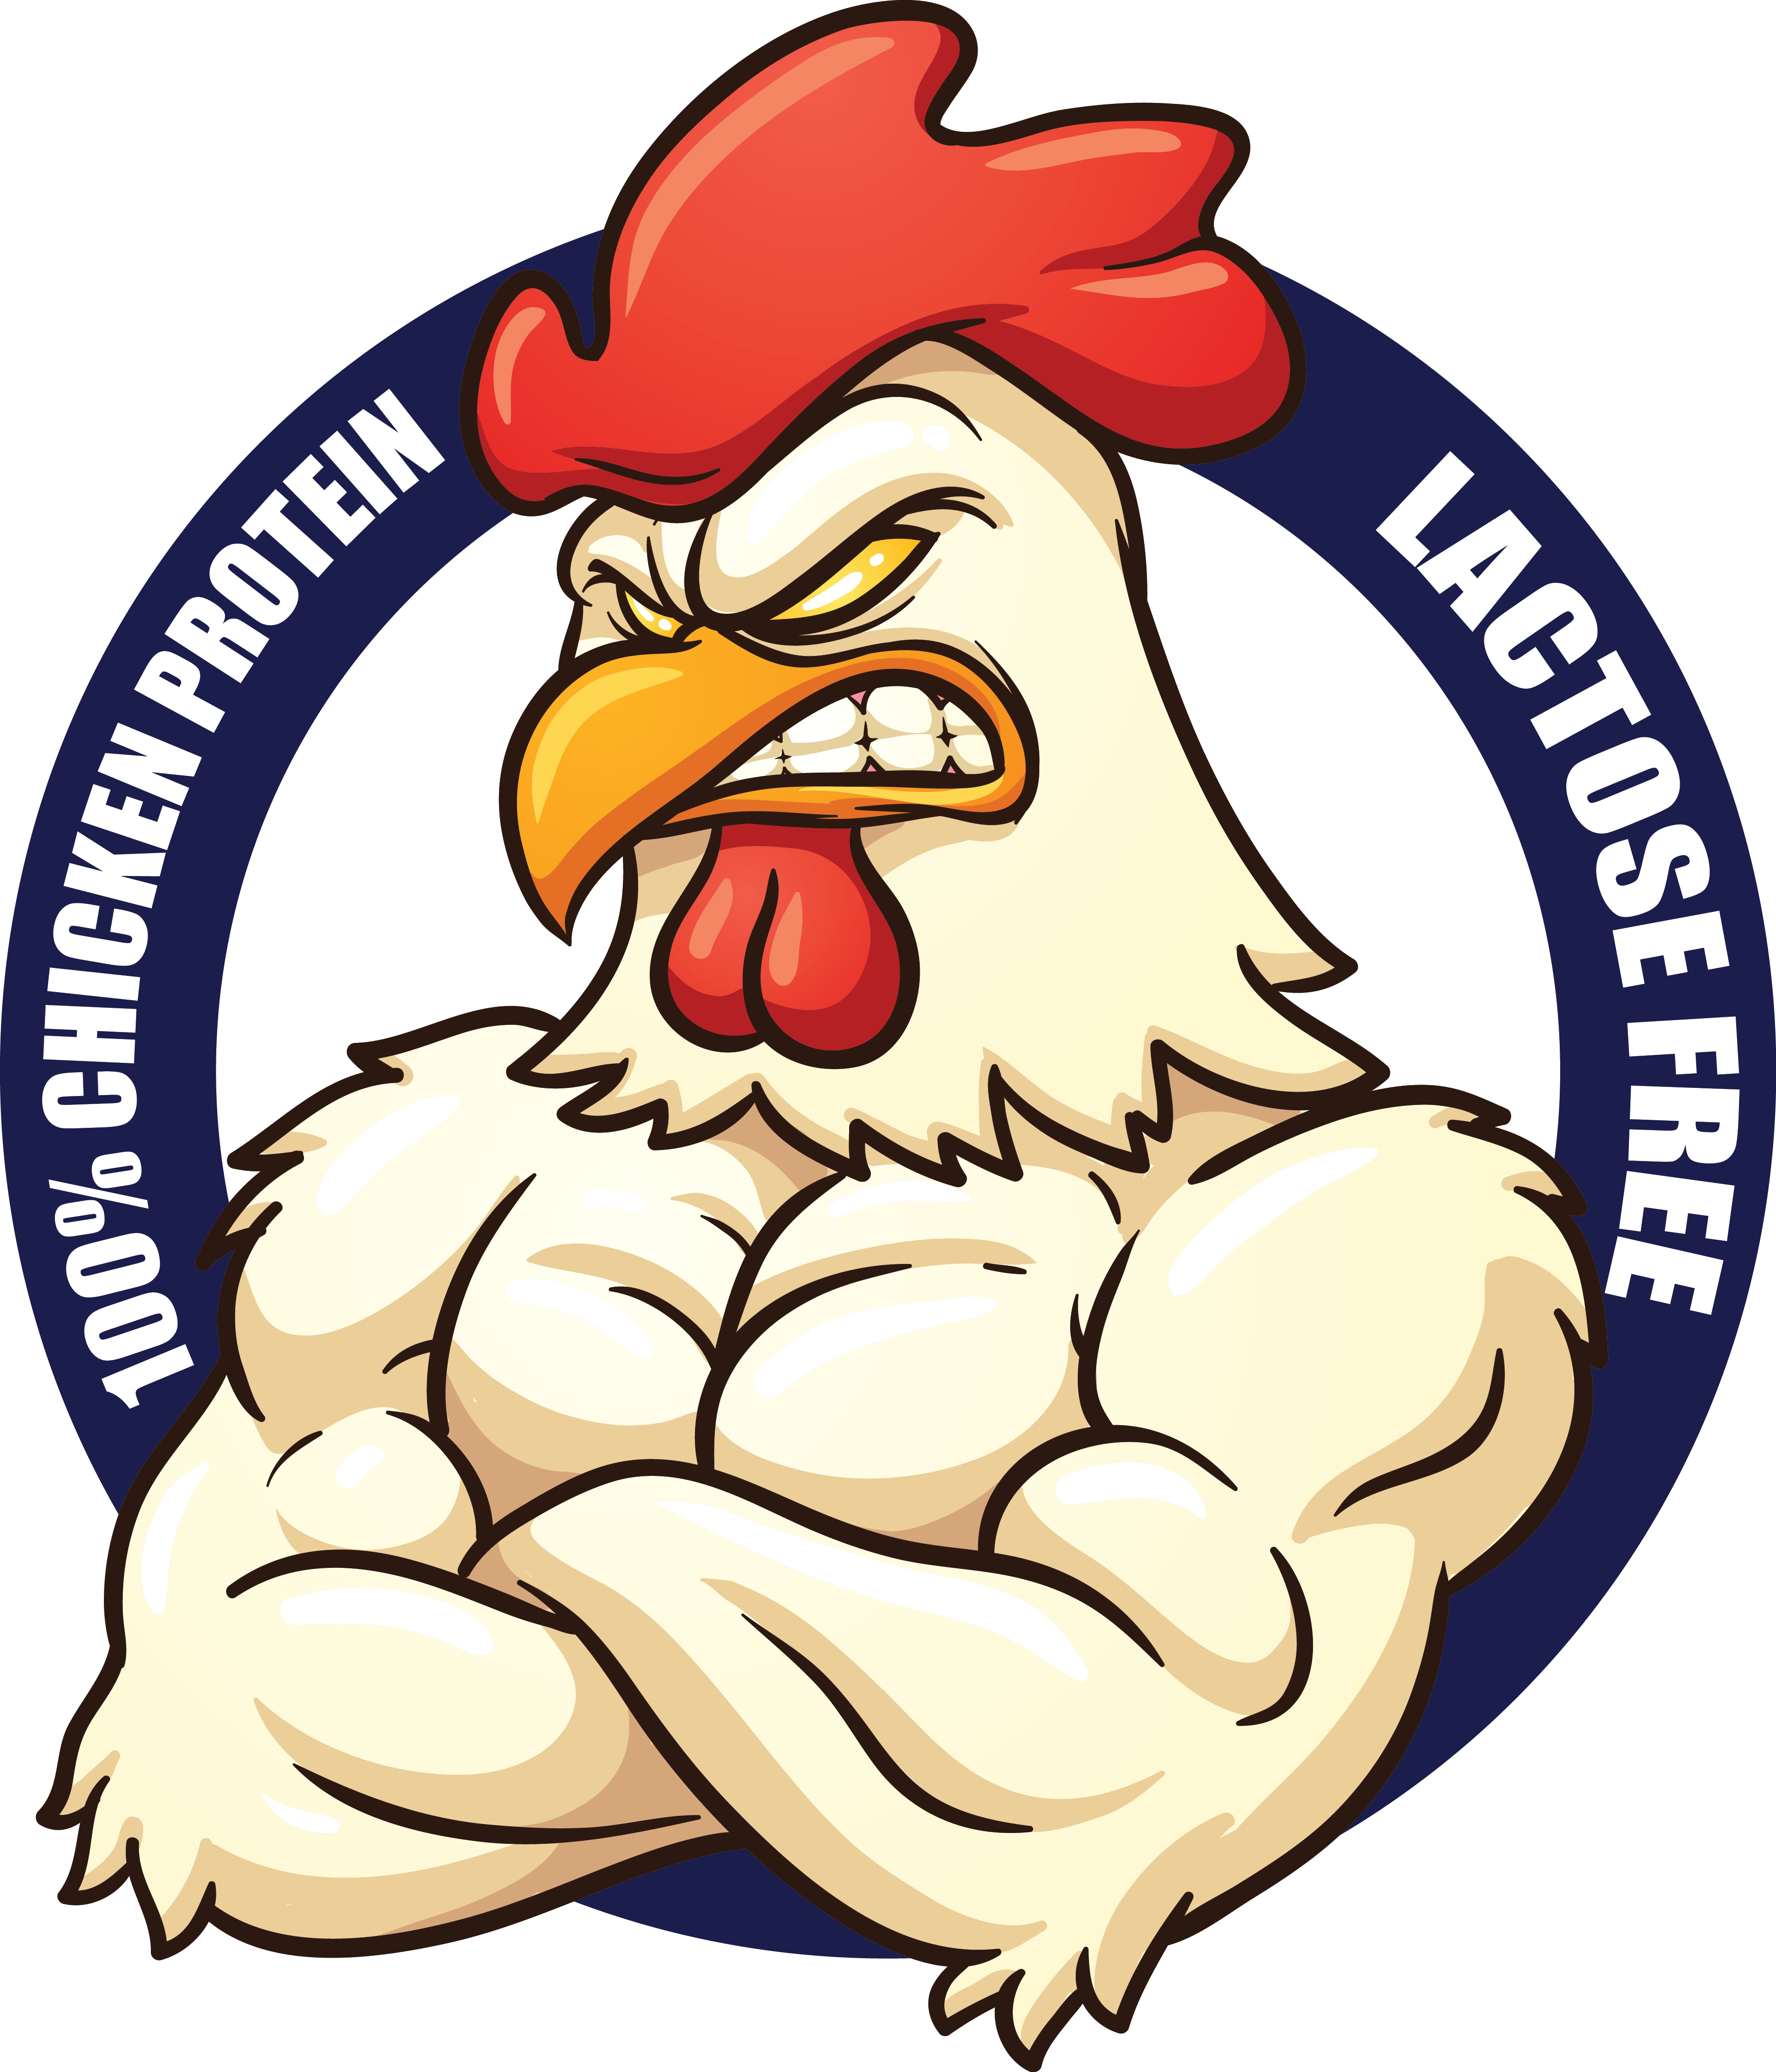 Muscles clipart endurance. Chicken amino acid tablets